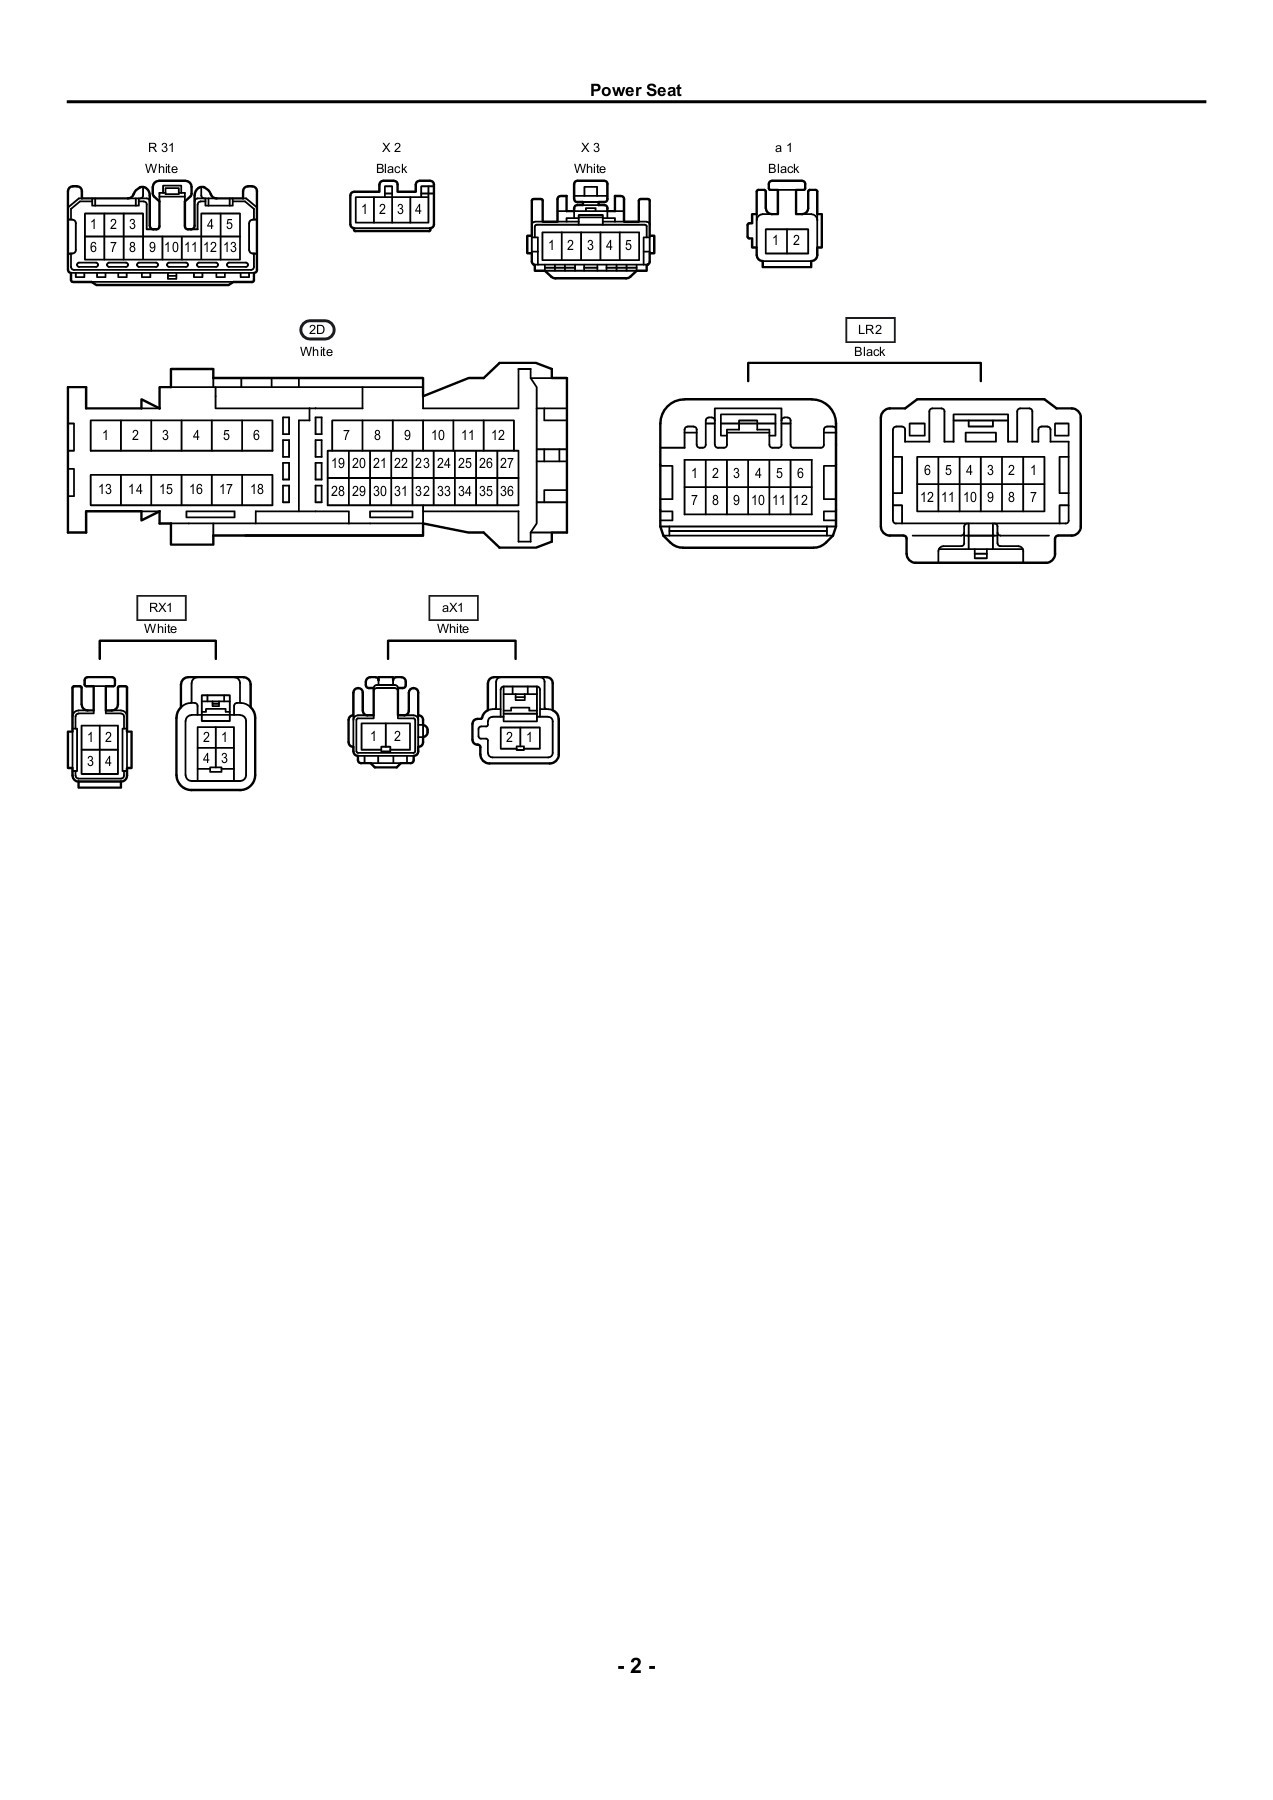 small resolution of toyota prius 2010 electrical wiring diagrams pages 351 400 text version fliphtml5